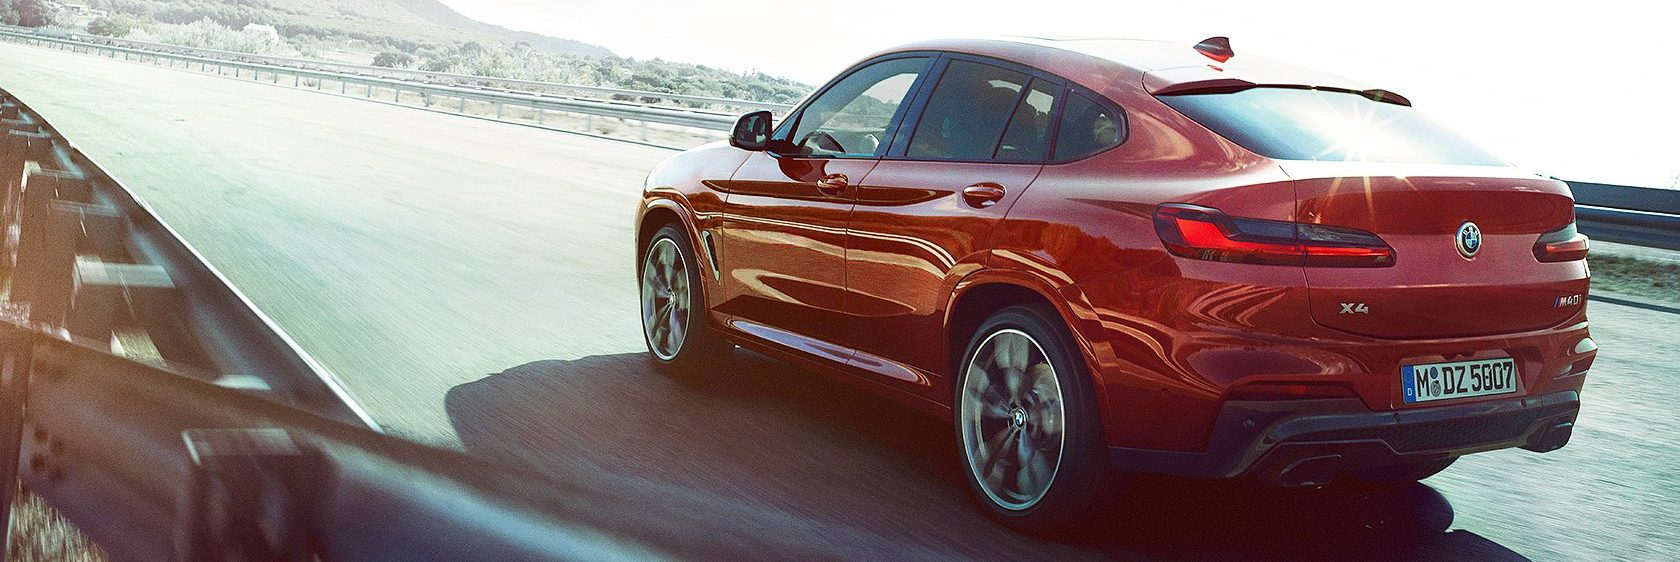 BMW X4 driving on country highway